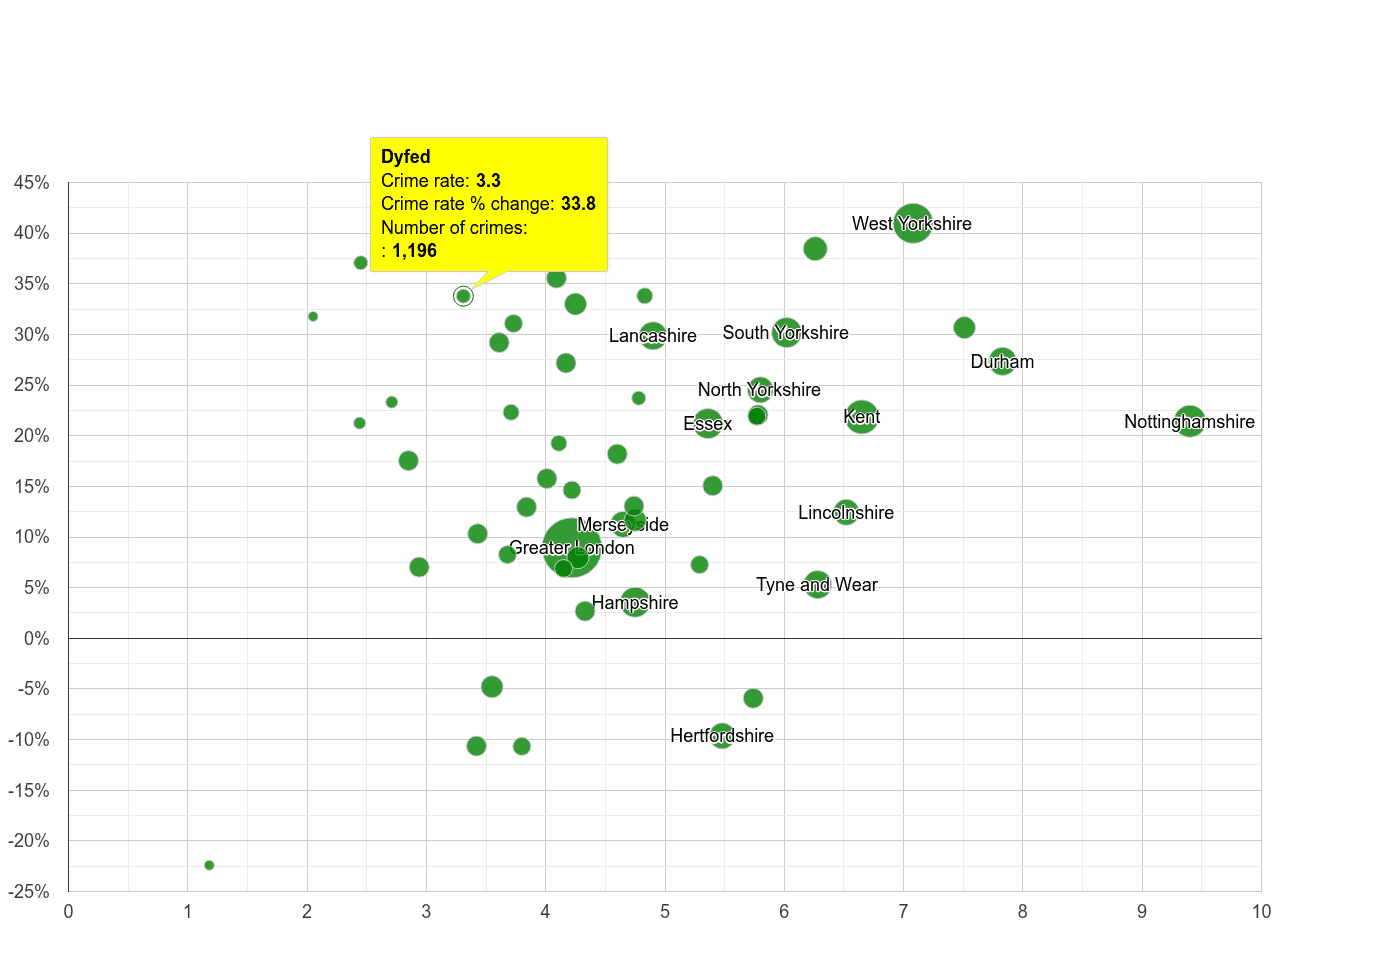 Dyfed shoplifting crime rate compared to other counties